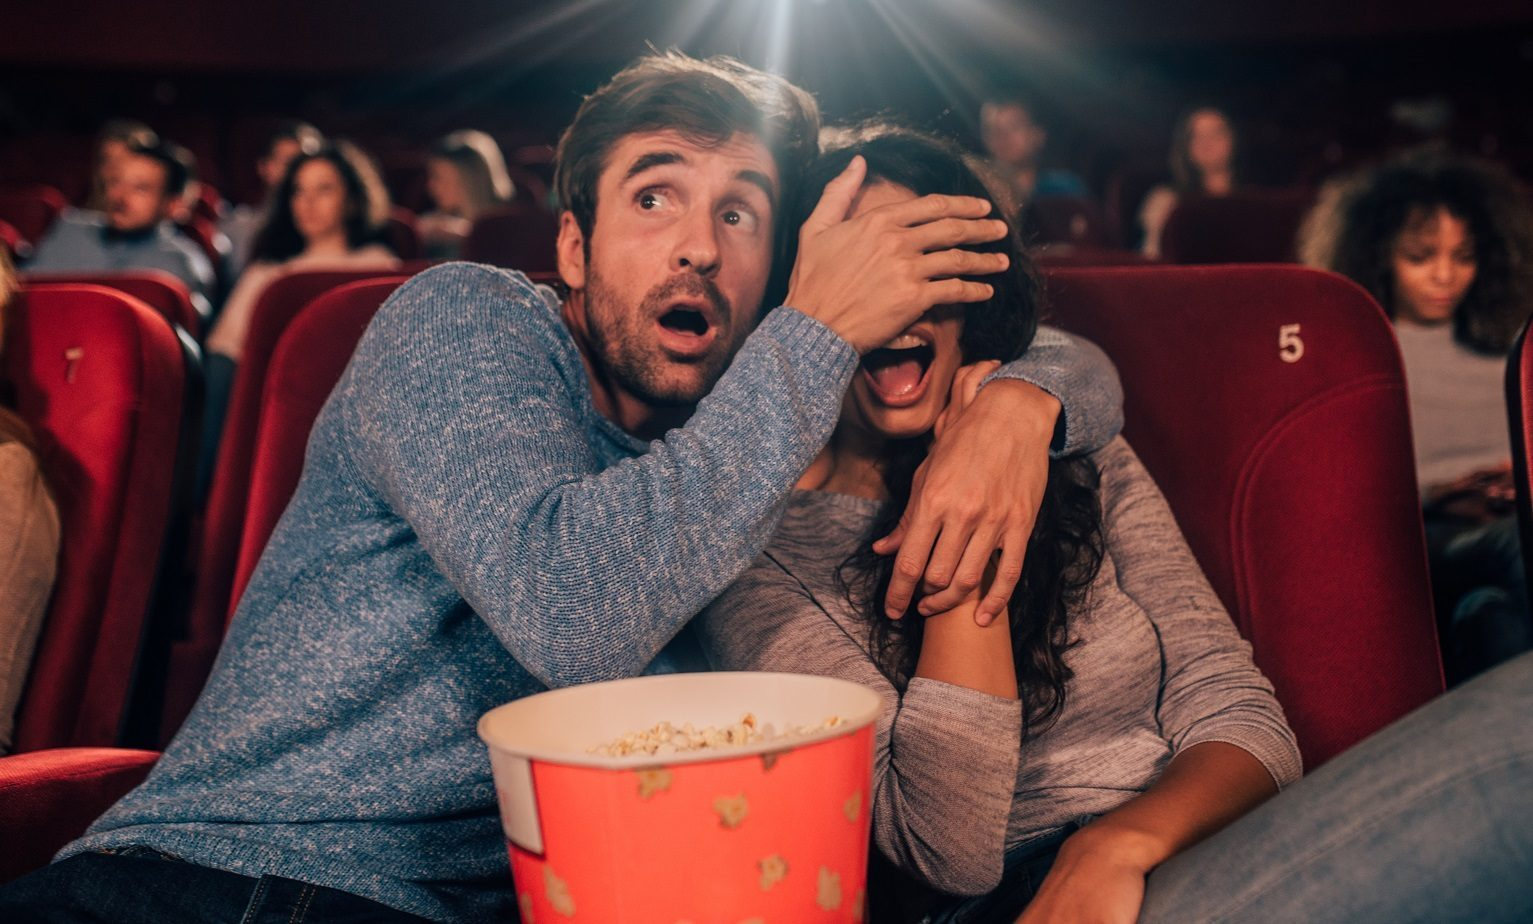 Scared couple watching horror movie at the cinema